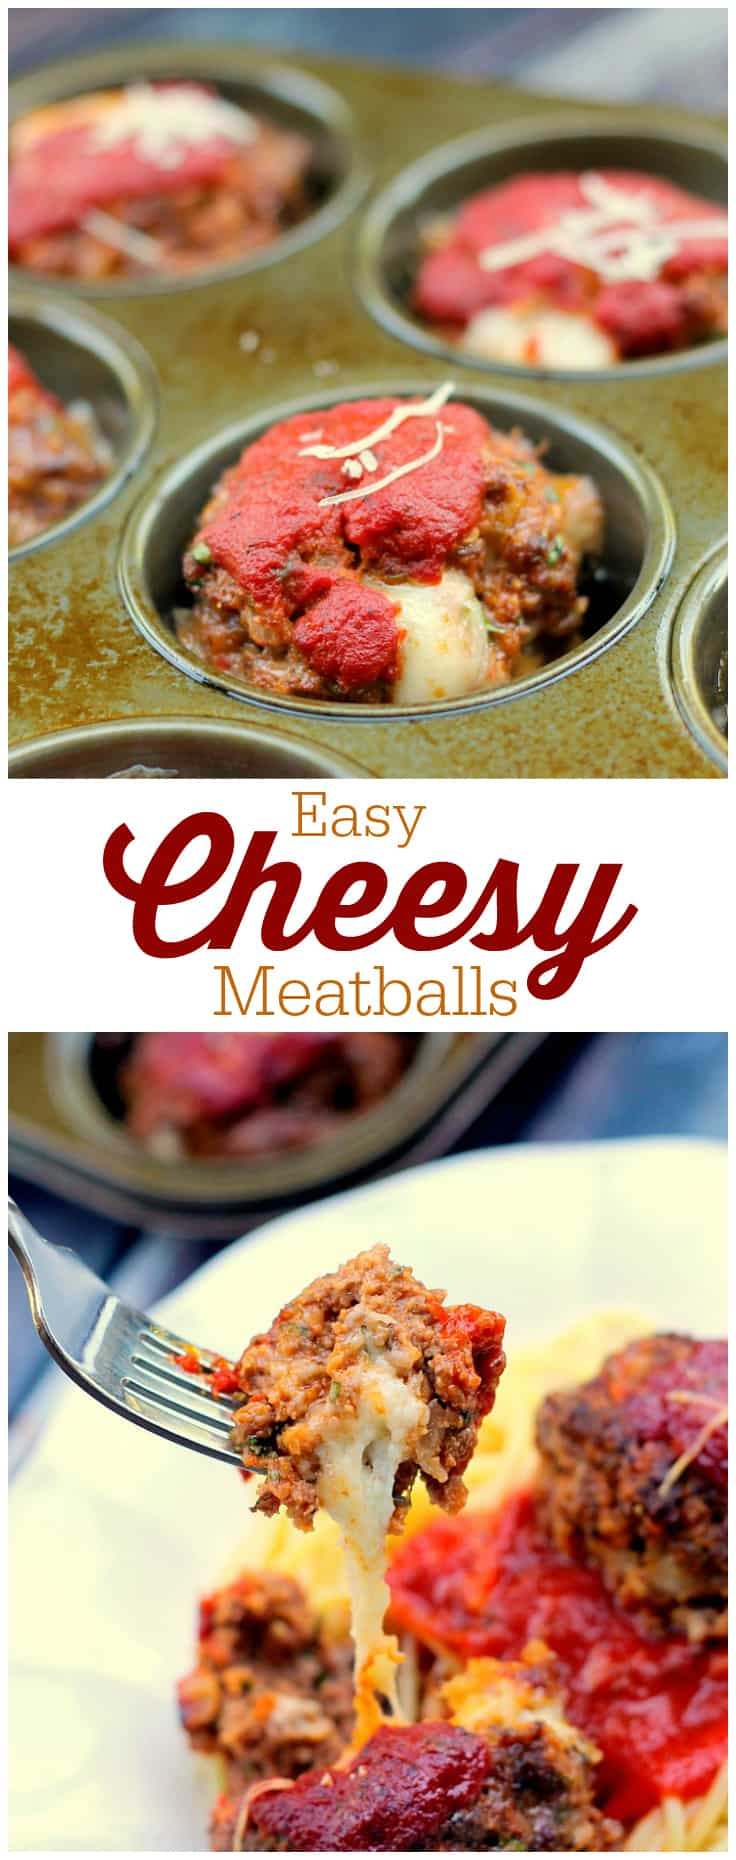 Easy Cheesy Meatballs - so easy to make that even the kids can help make this recipe! Stuffed with melted cheese and served with marinara sauce and pasta for a delicious meal. Yum!